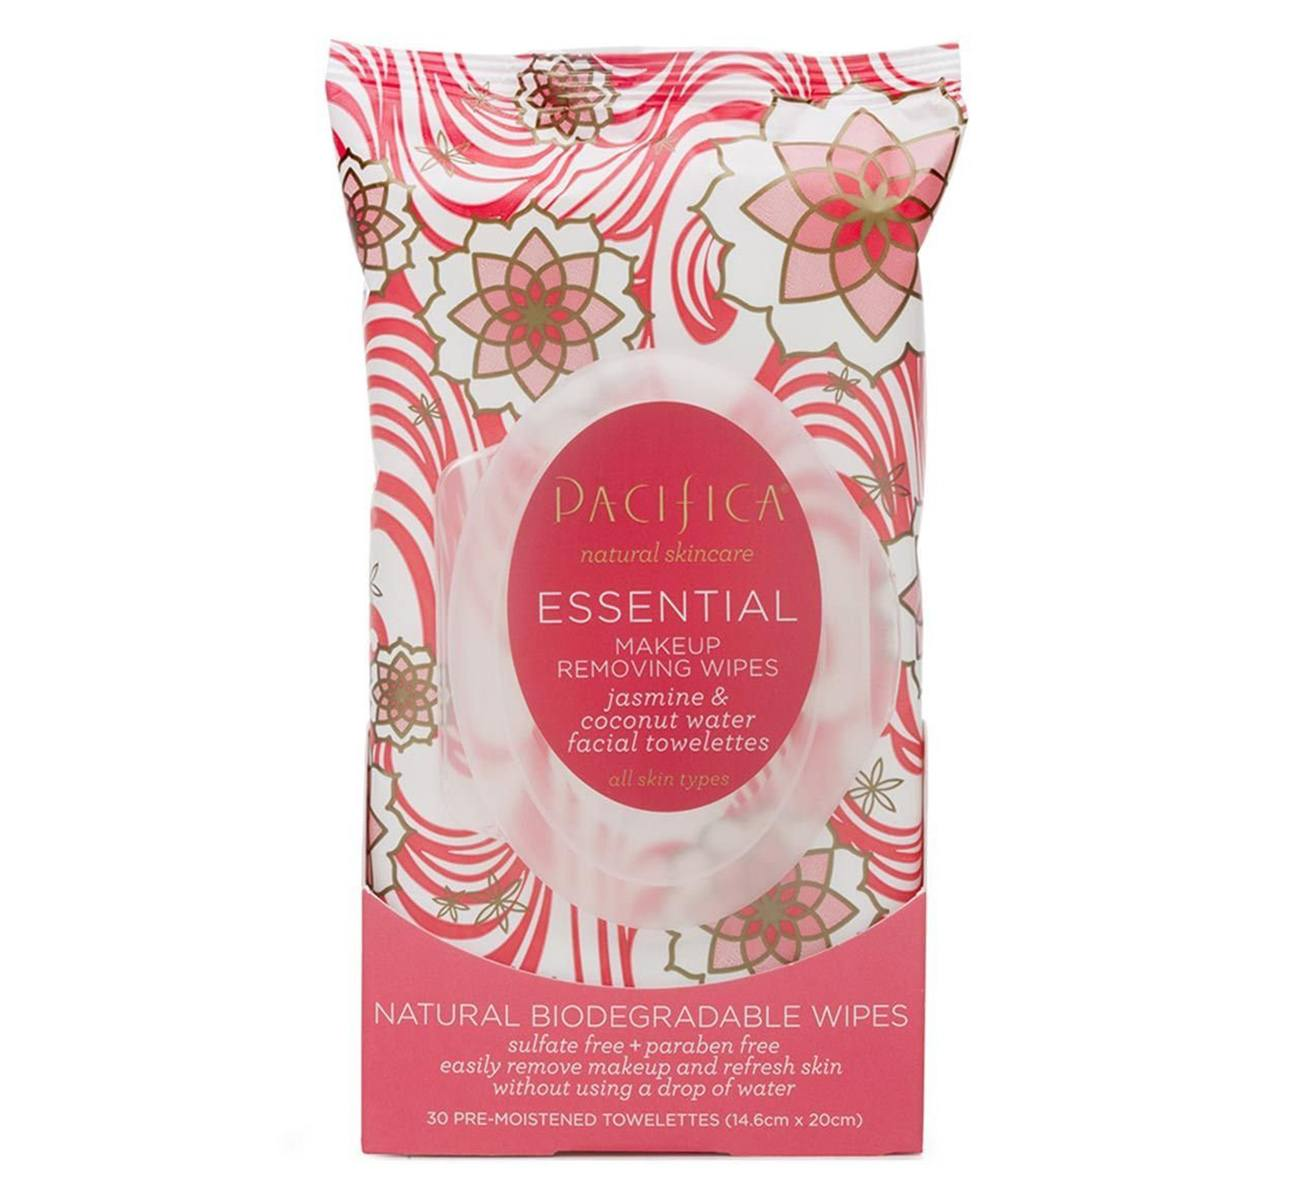 Pacifica Essential Vegan Makeup Remover Wipes